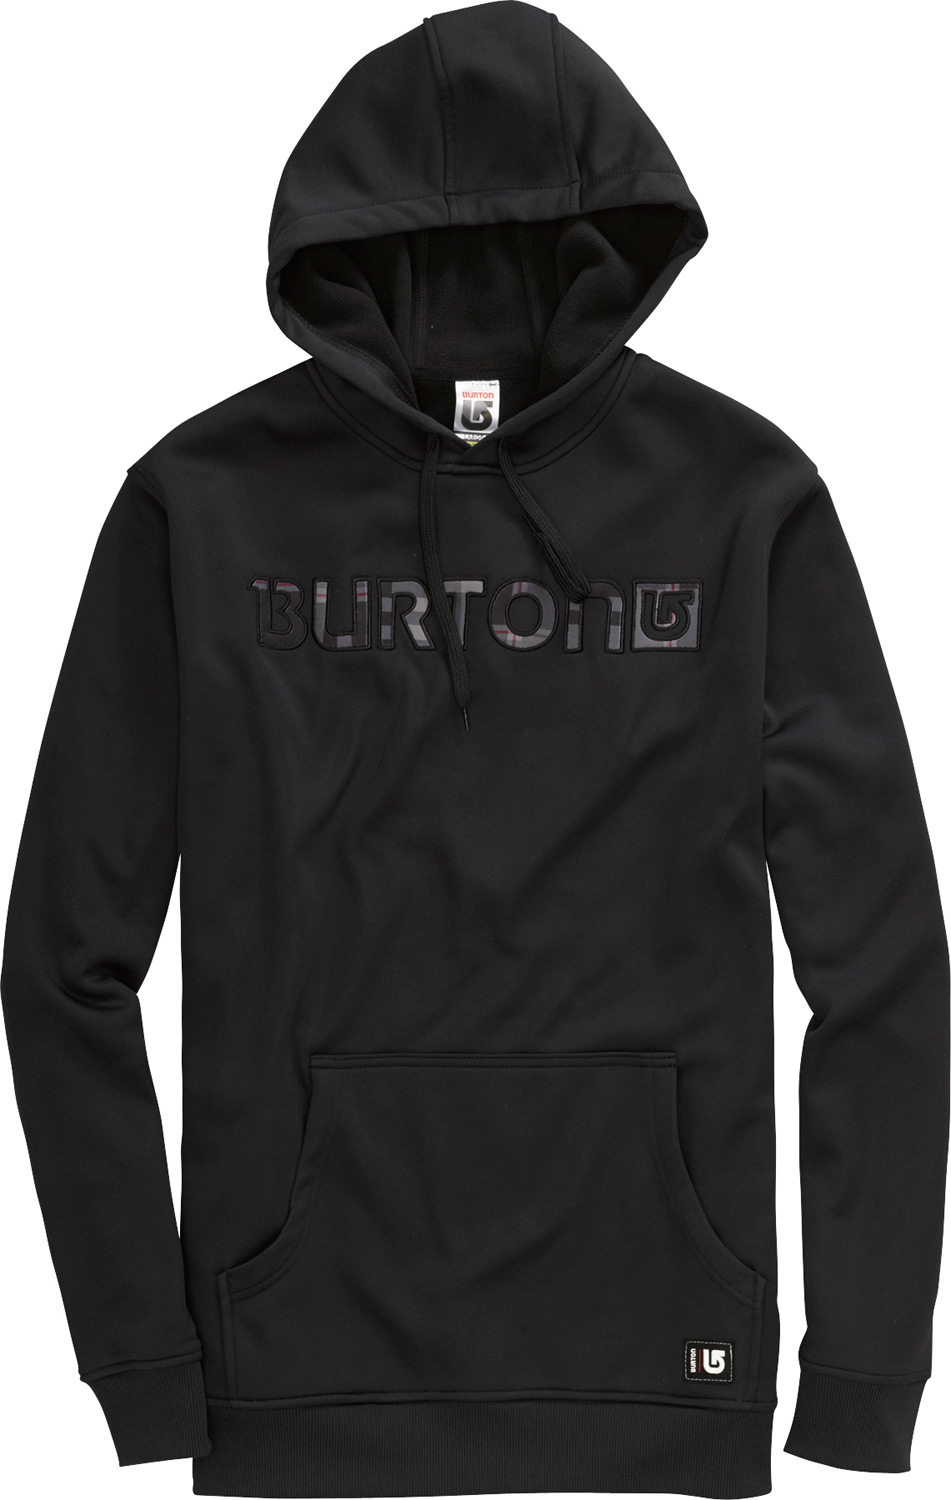 Snowboard Quick-drying and warm with extra room in case there's anything to hide.Key Features of the Burton Cymbal Hoodie: DRYRIDE Thermex Bonded, Hard-Surface Fleece with Brushed Backer Team Fit Hood with Drawstring Closure Kangaroo Handwarmer Pocket Hidden Side Seam Stash Pocket - $48.95